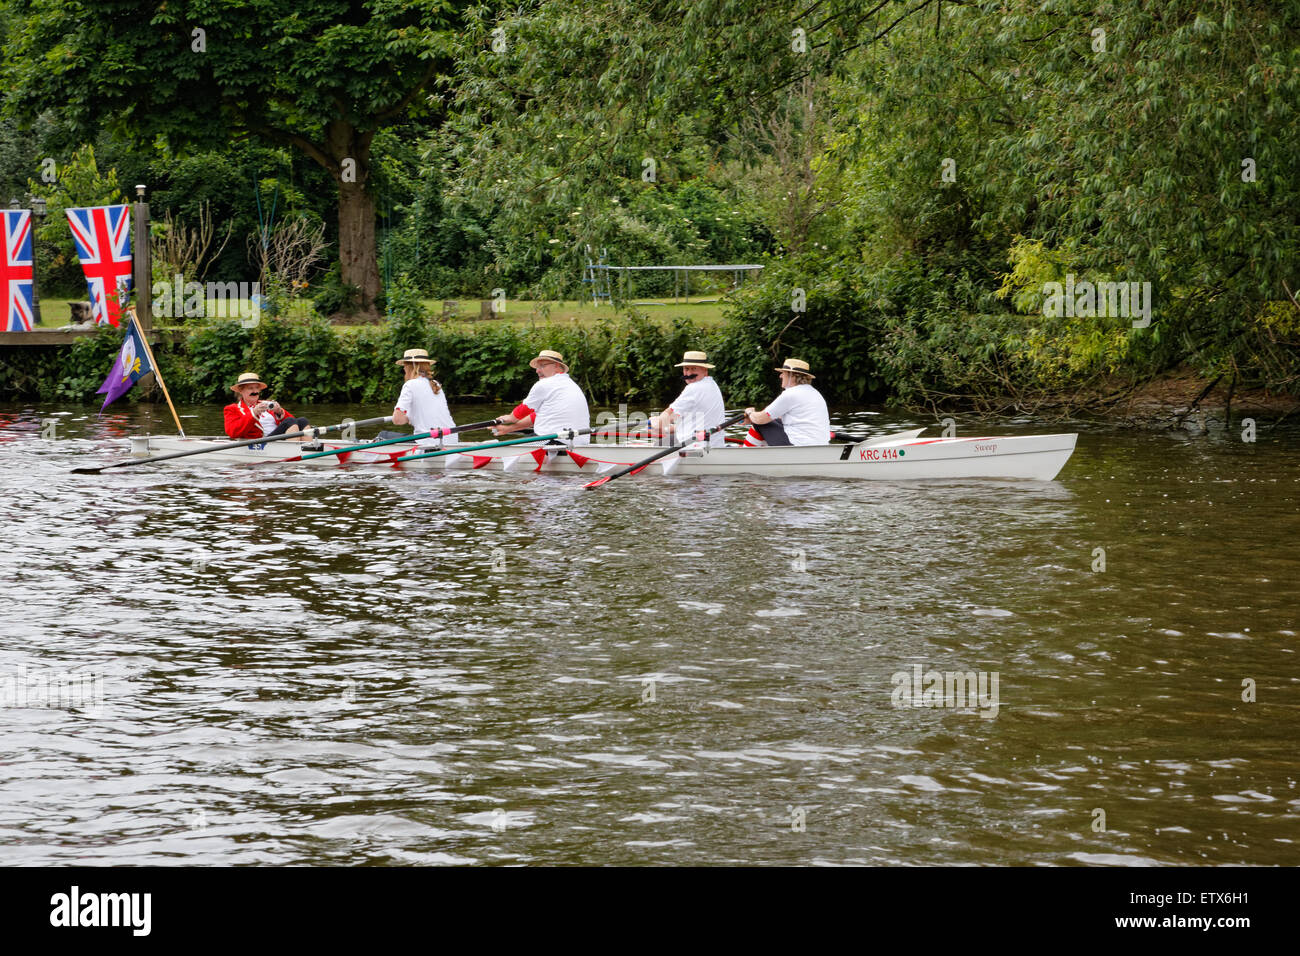 Coxed Four rowing on the River Thames at Runnymede in straw boaters and mustaches. - Stock Image